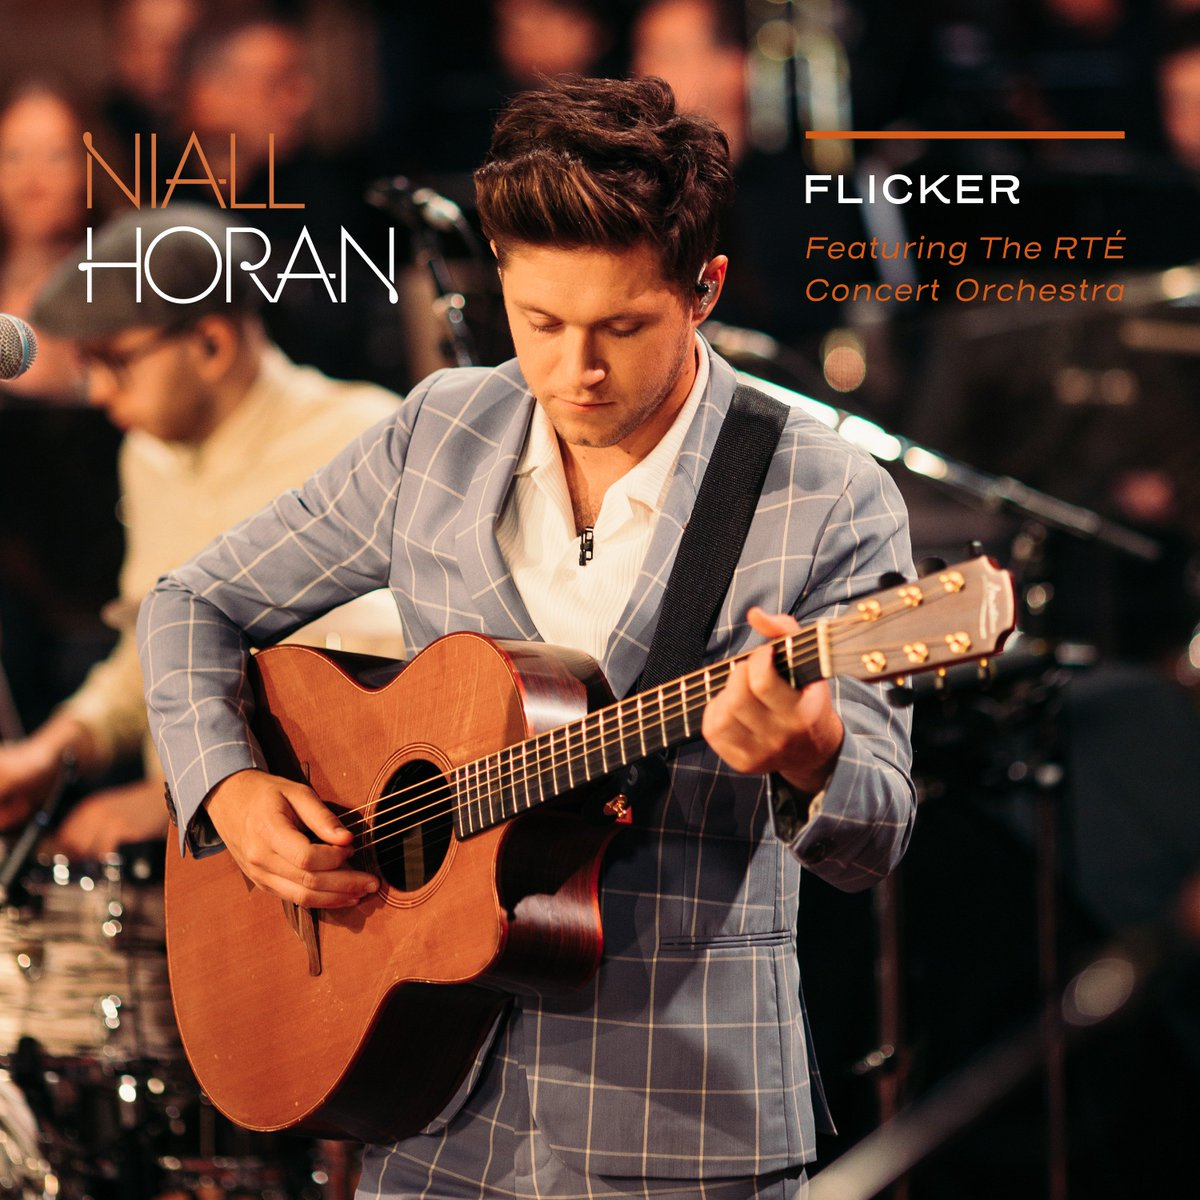 """Earlier this year, I had the honour of recording some tracks from Flicker with a 45 piece orchestra in Dublin . I'm delighted to announce the release of """"Flicker feat. The RTÉ Concert Orchestra"""" on 7th December ."""